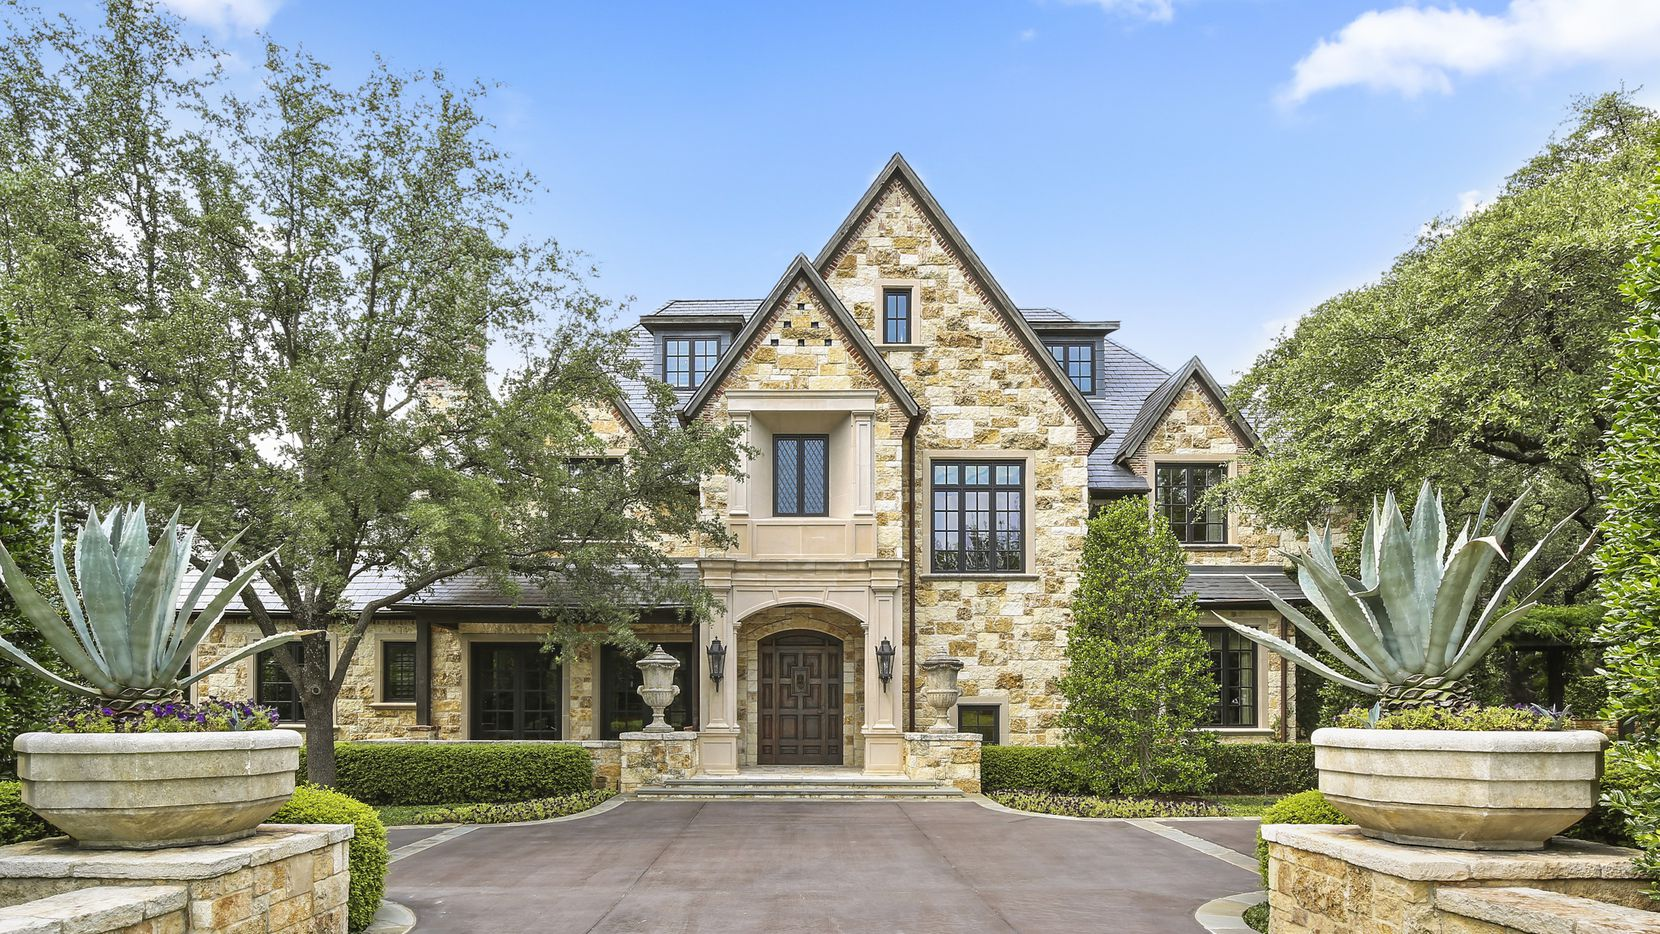 A 15,402-square-foot Old Preston Hollow home at 5031 Deloache is listed at a hefty $10,995,000.